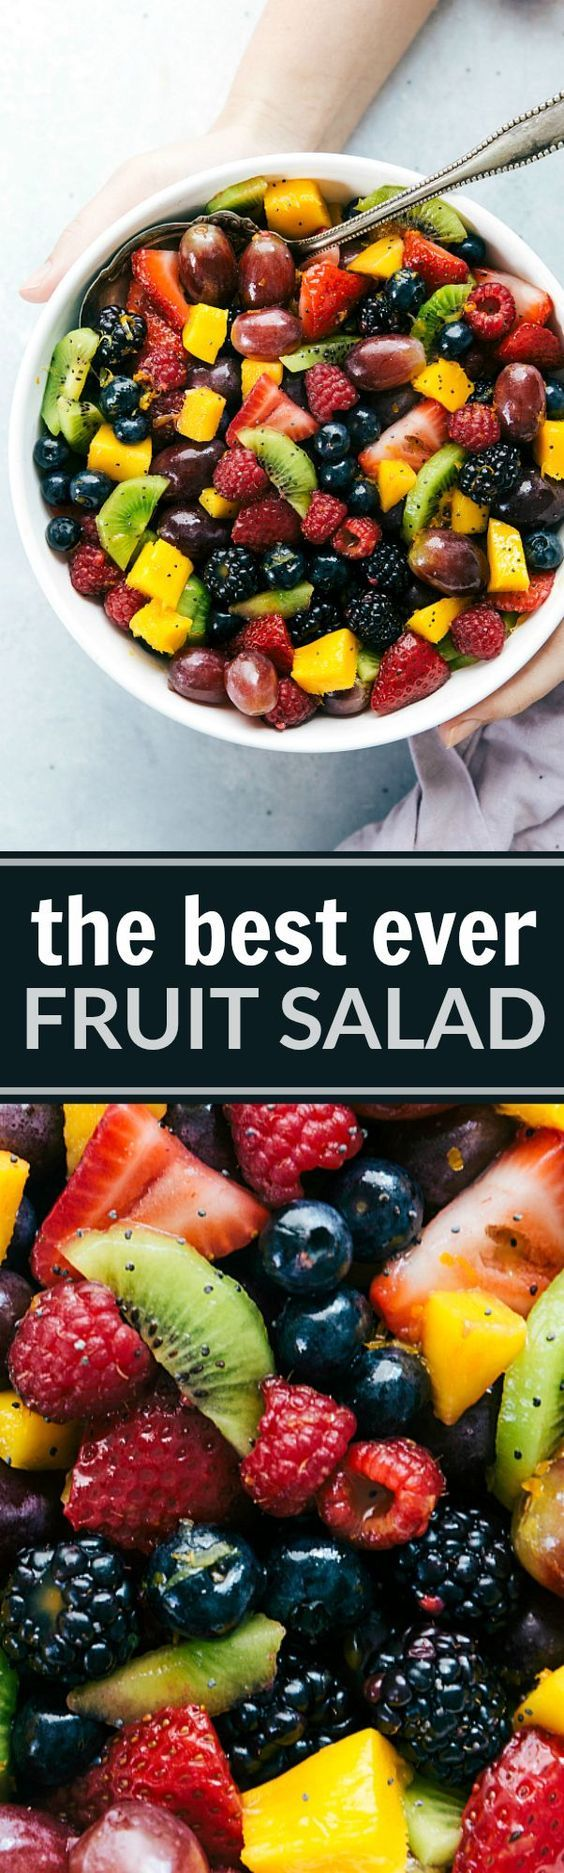 The best ever fruit salad coated in a simple blackberry lime dressing  Perfect for potlucks, summer parties, or a side dish to your meals! is part of Fruit salad recipes -